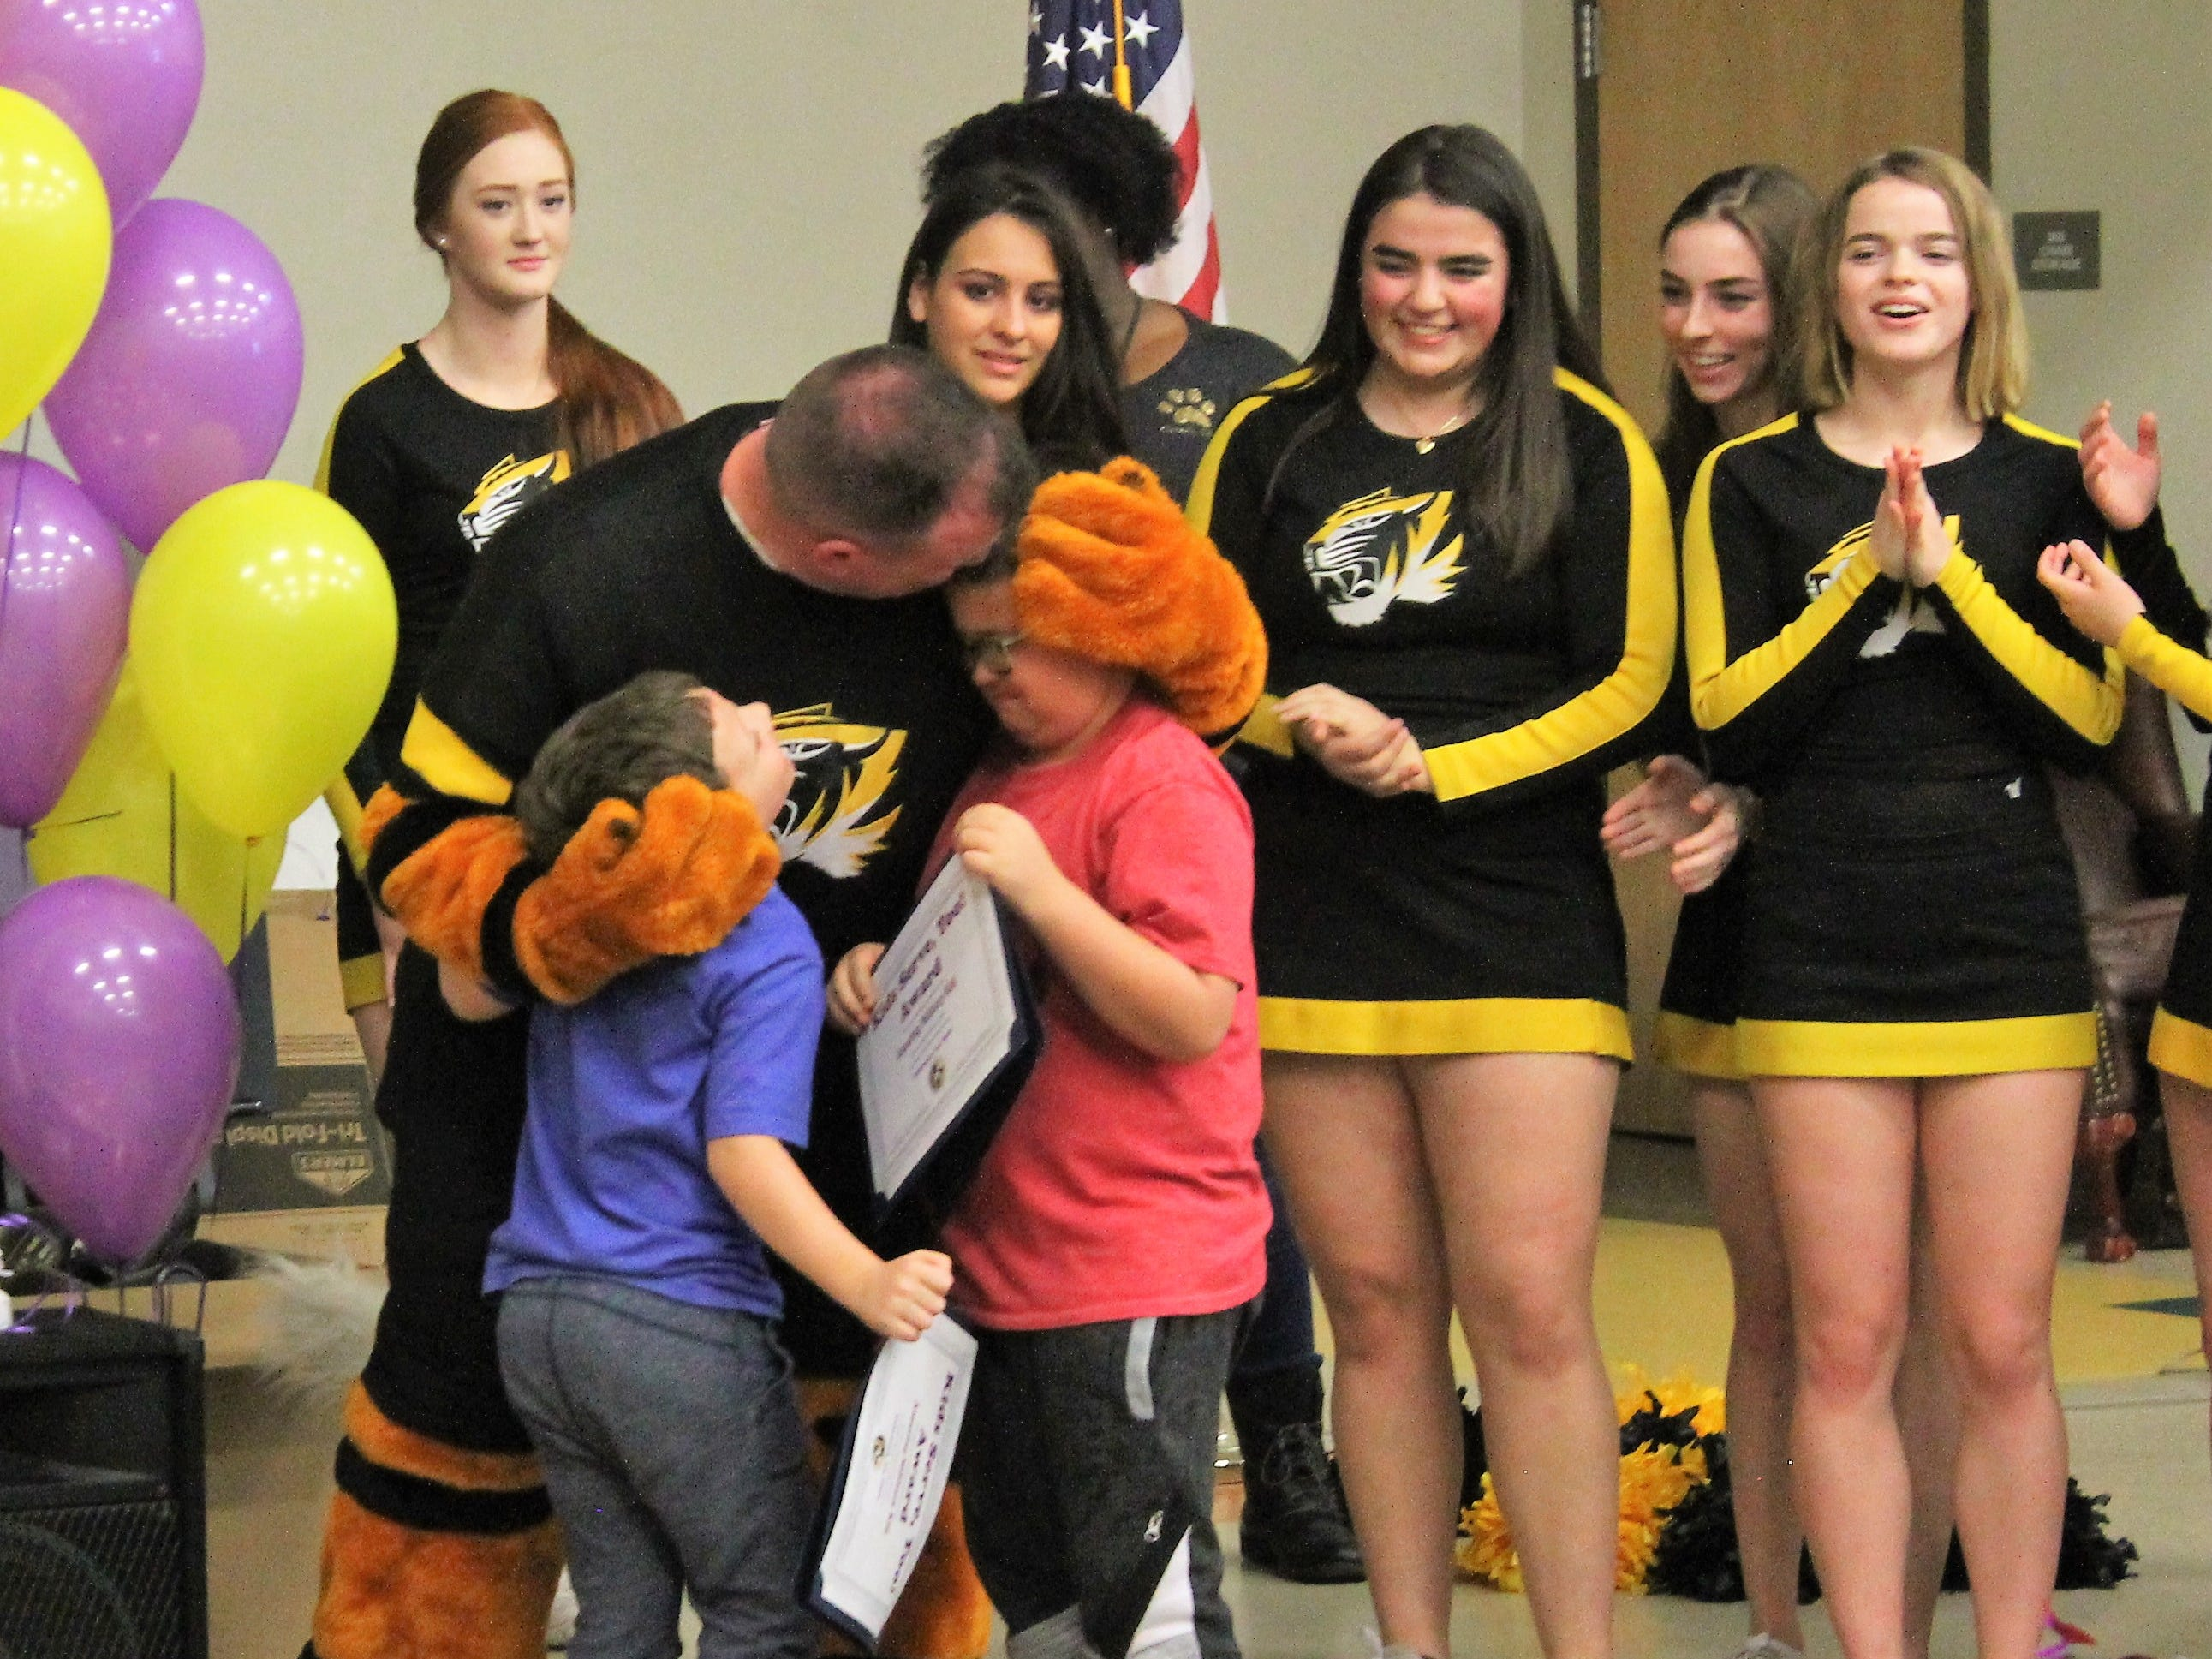 Ethan Scott who was dressed as the Alamogordo High School Tiger mascot revealed himself to his sons Dominic and Corben Scott at a Desert Star Elementary School assembly Feb. 14.